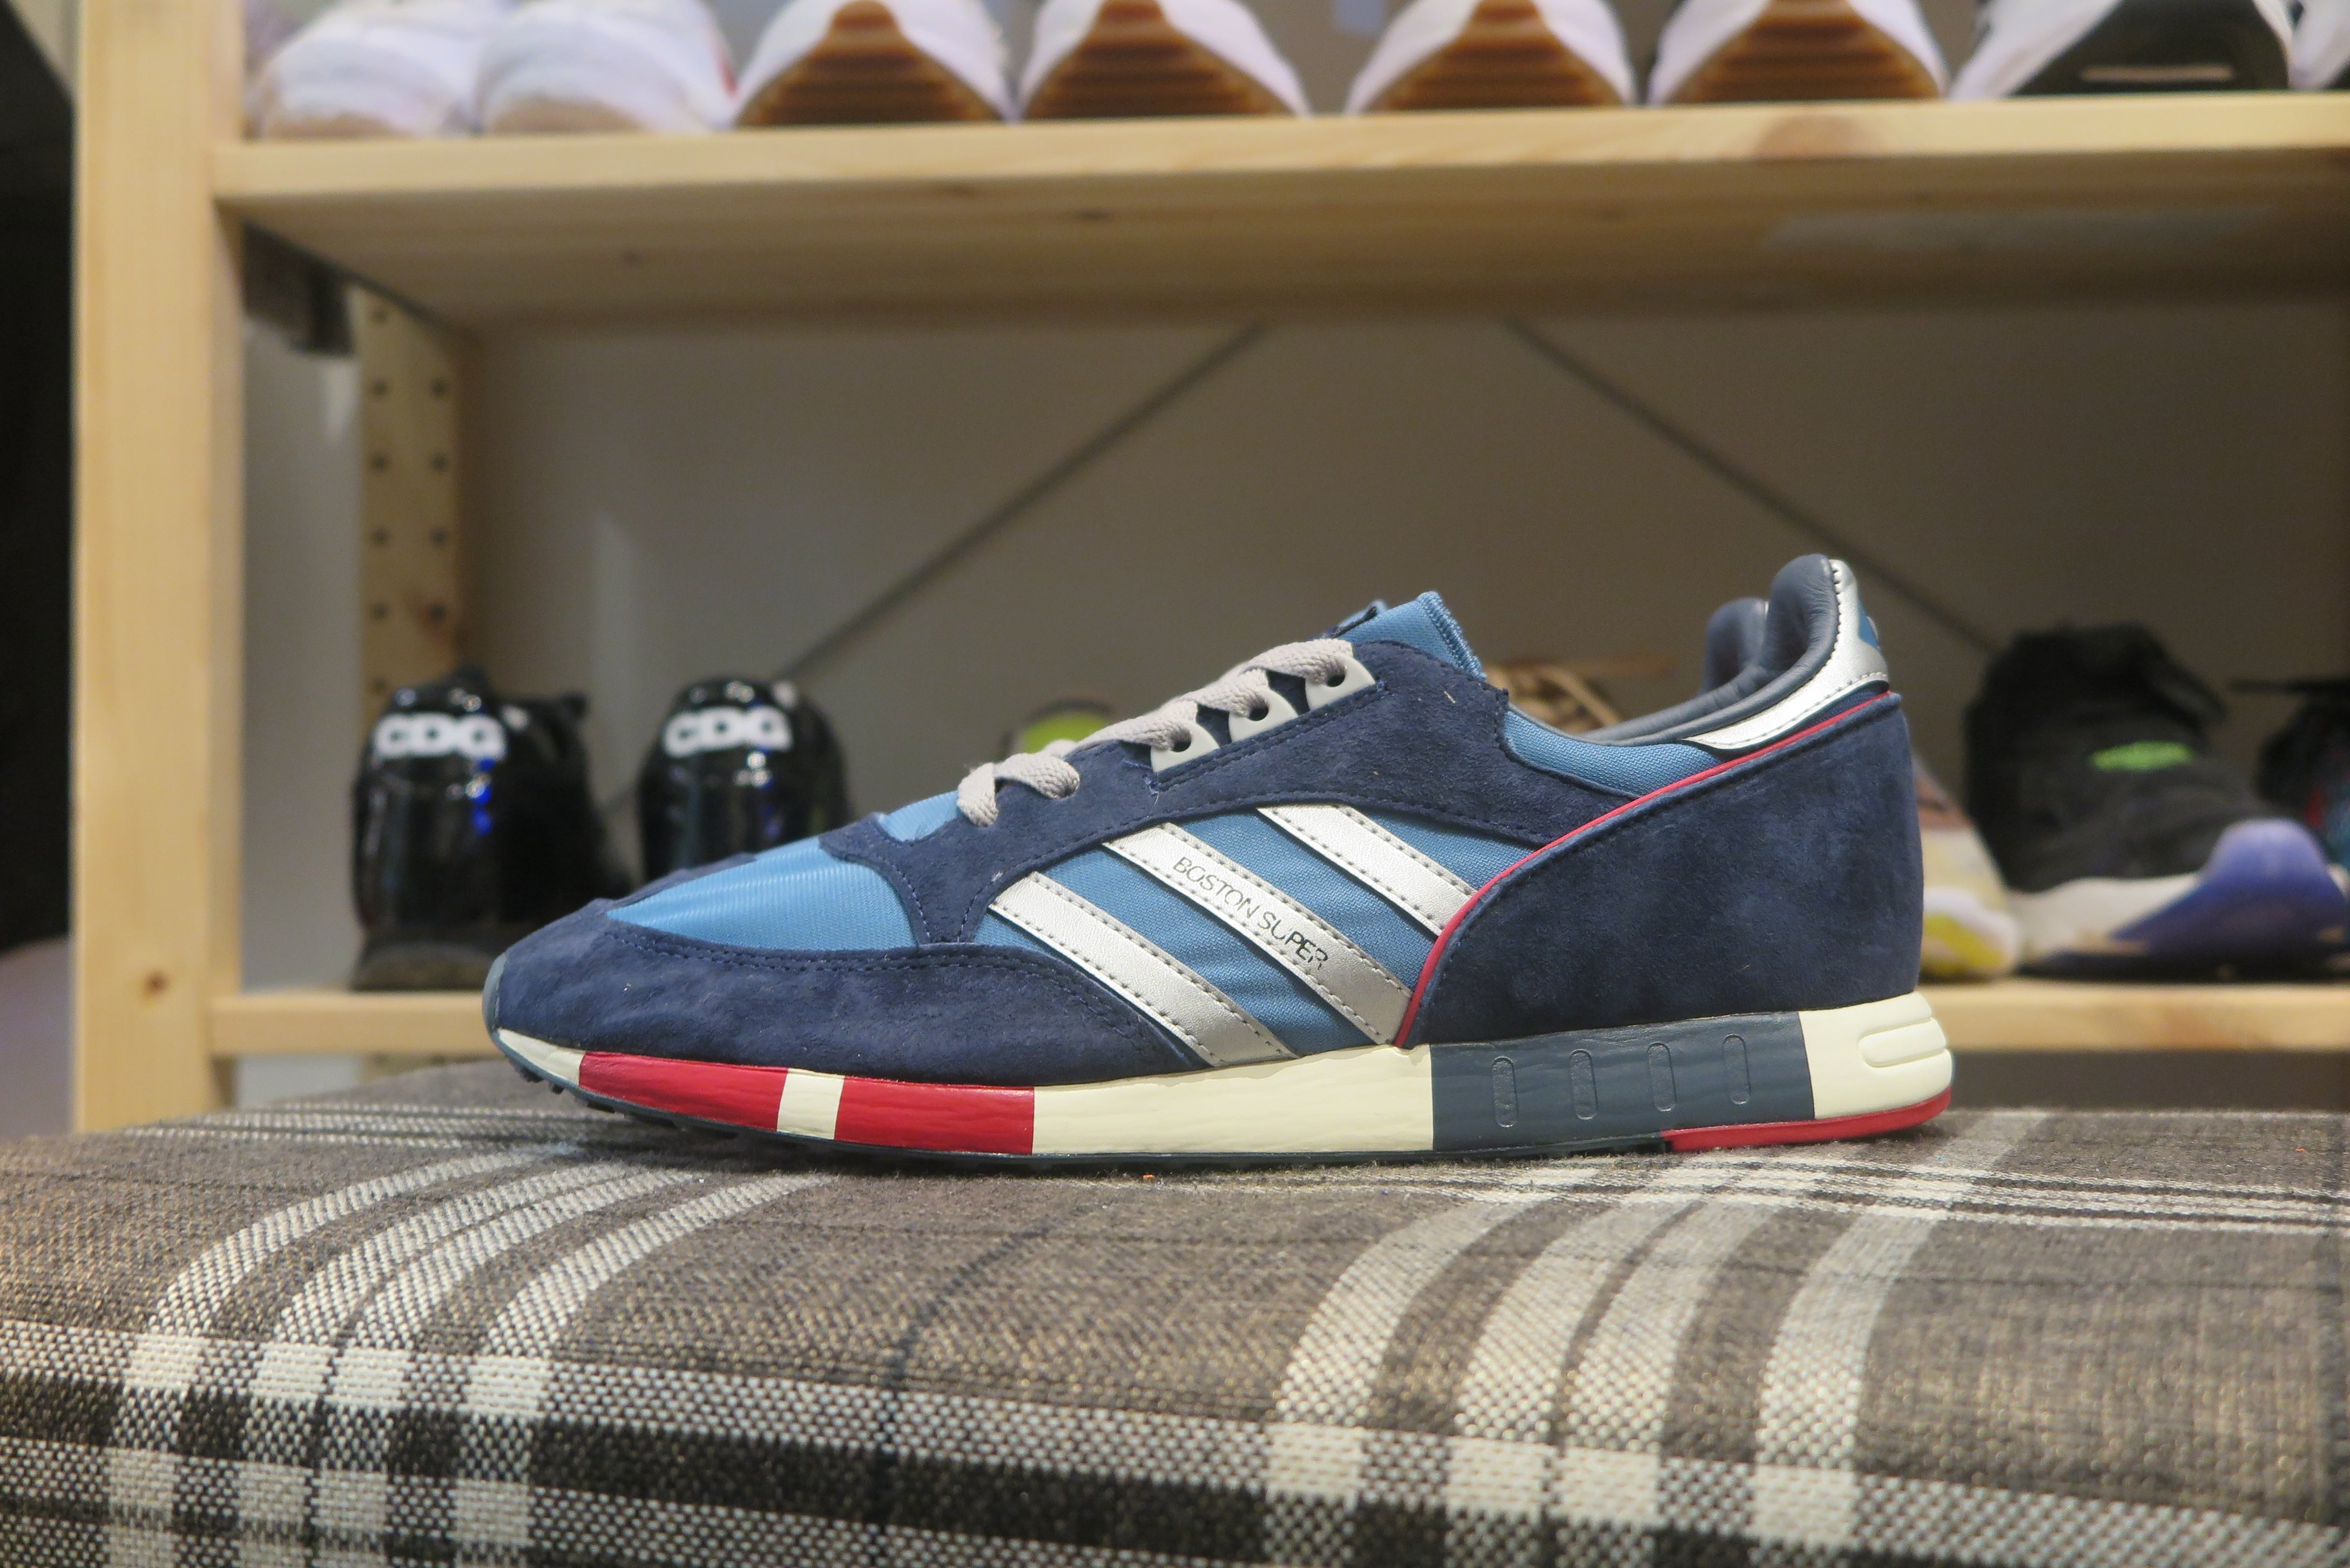 adidas Boston Super - St Stow/Silver Metallic/St Dark Shadow #M25419-Preorder Item-Navy Selected Shop